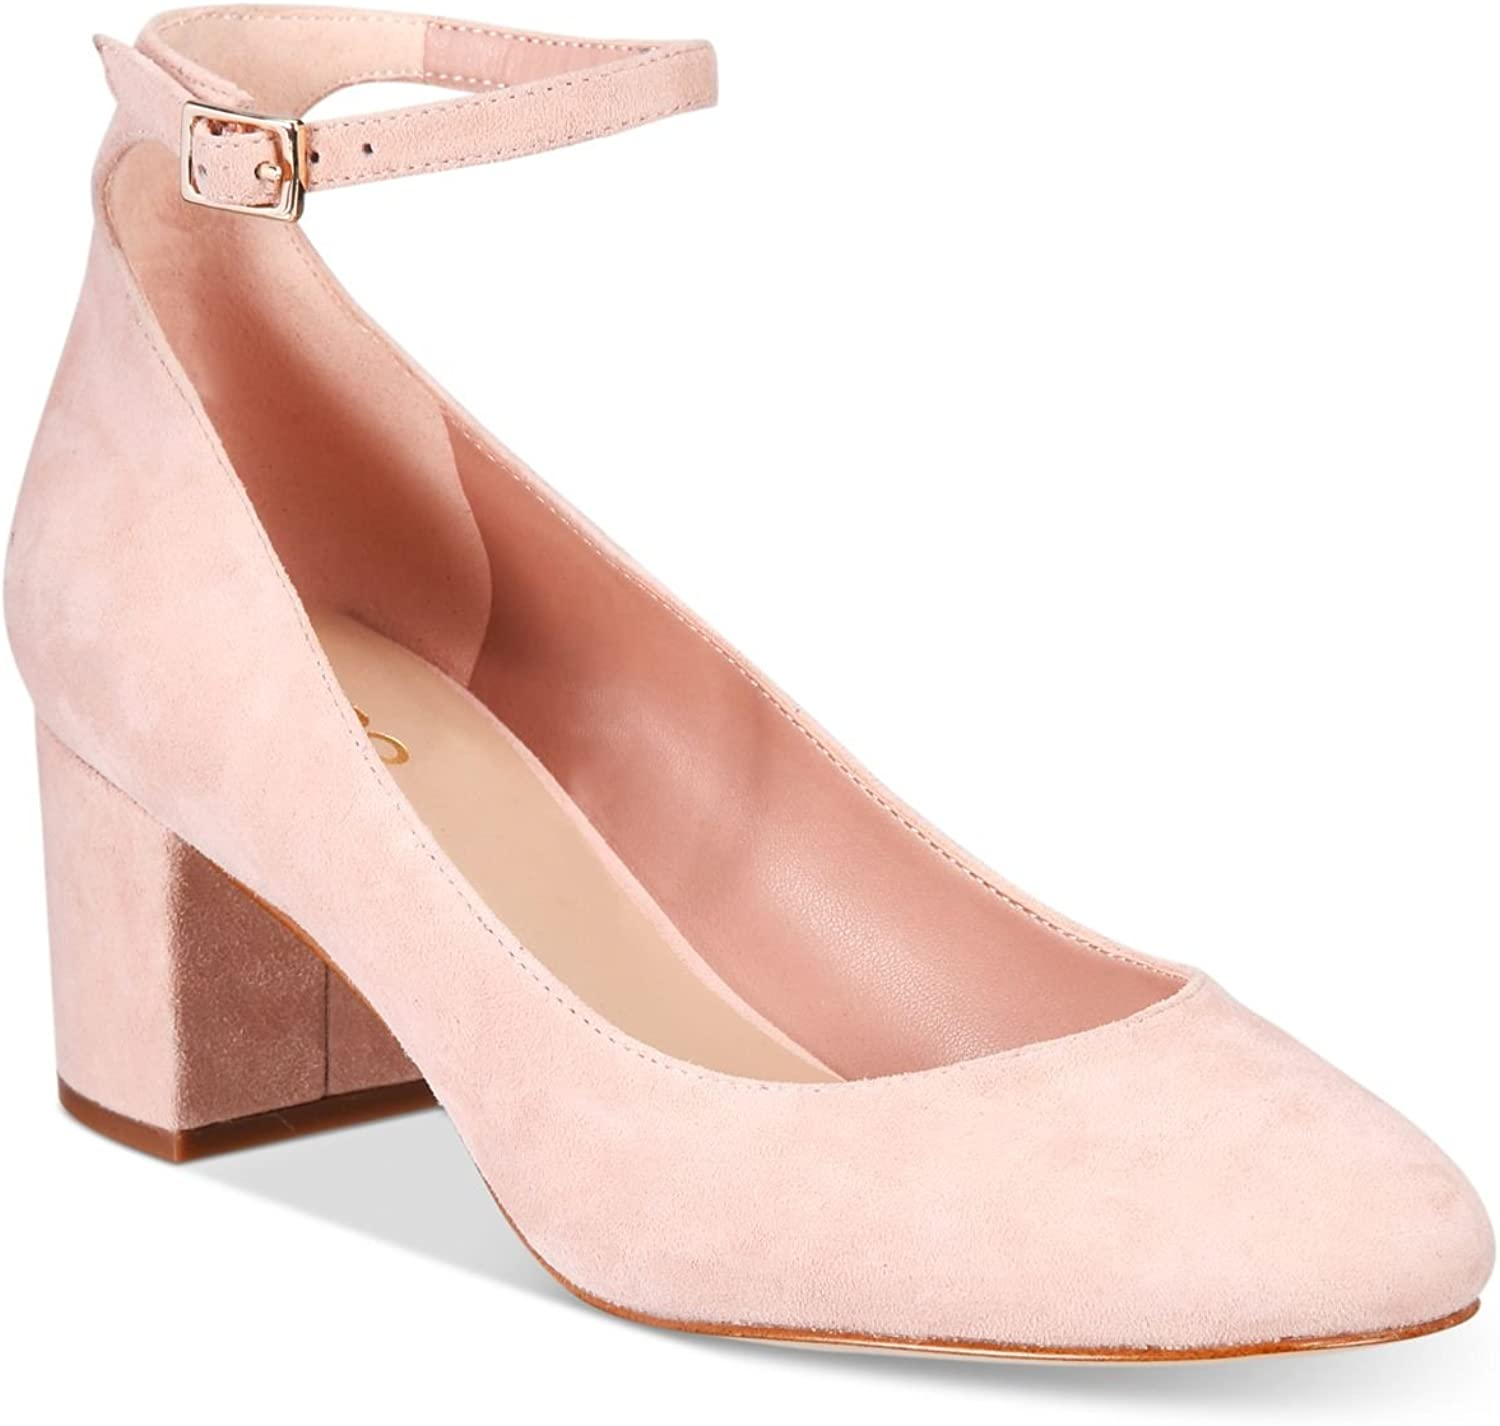 Aldo Womens Clarisse Suede Closed Toe Ankle Strap Classic Pumps, Pink, Size 8.0